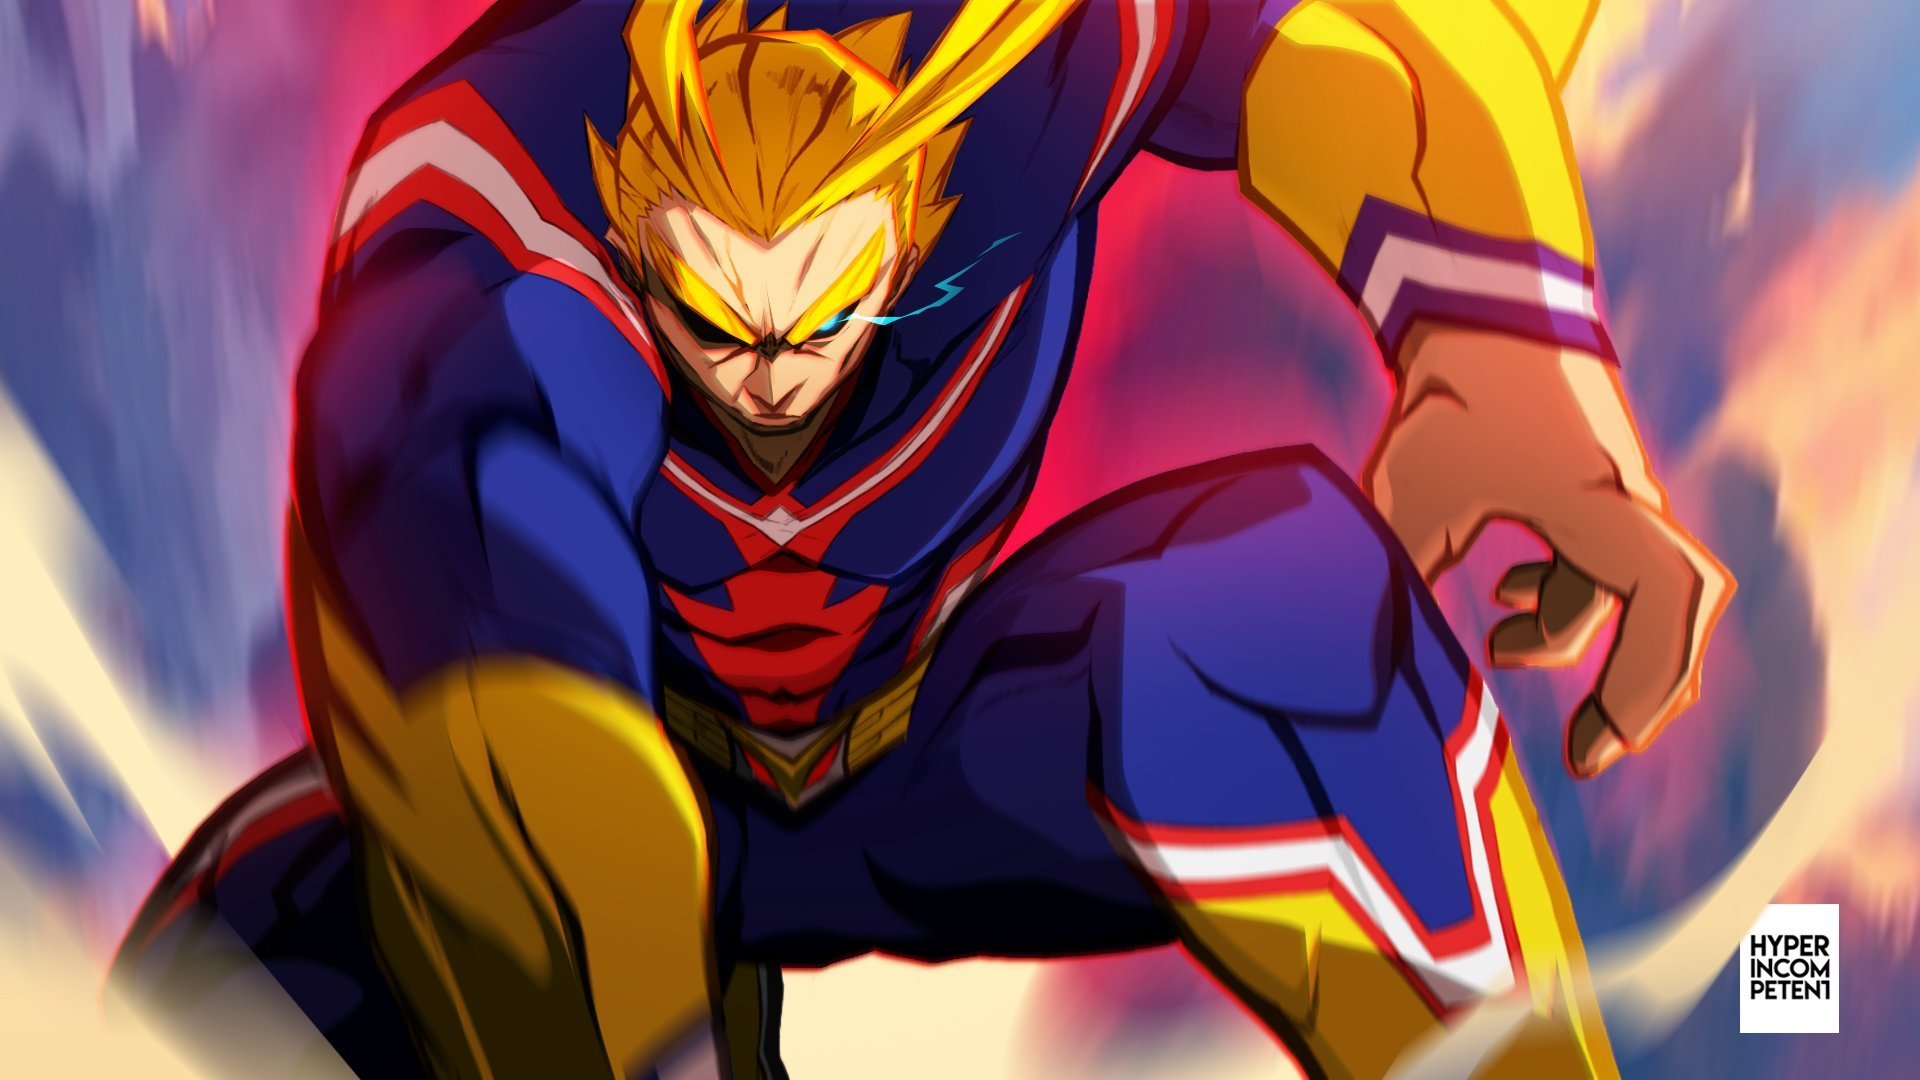 All Might Wallpaper – Became a hero wallpaper, anime, my hero academia, all might, izuku midoriya.